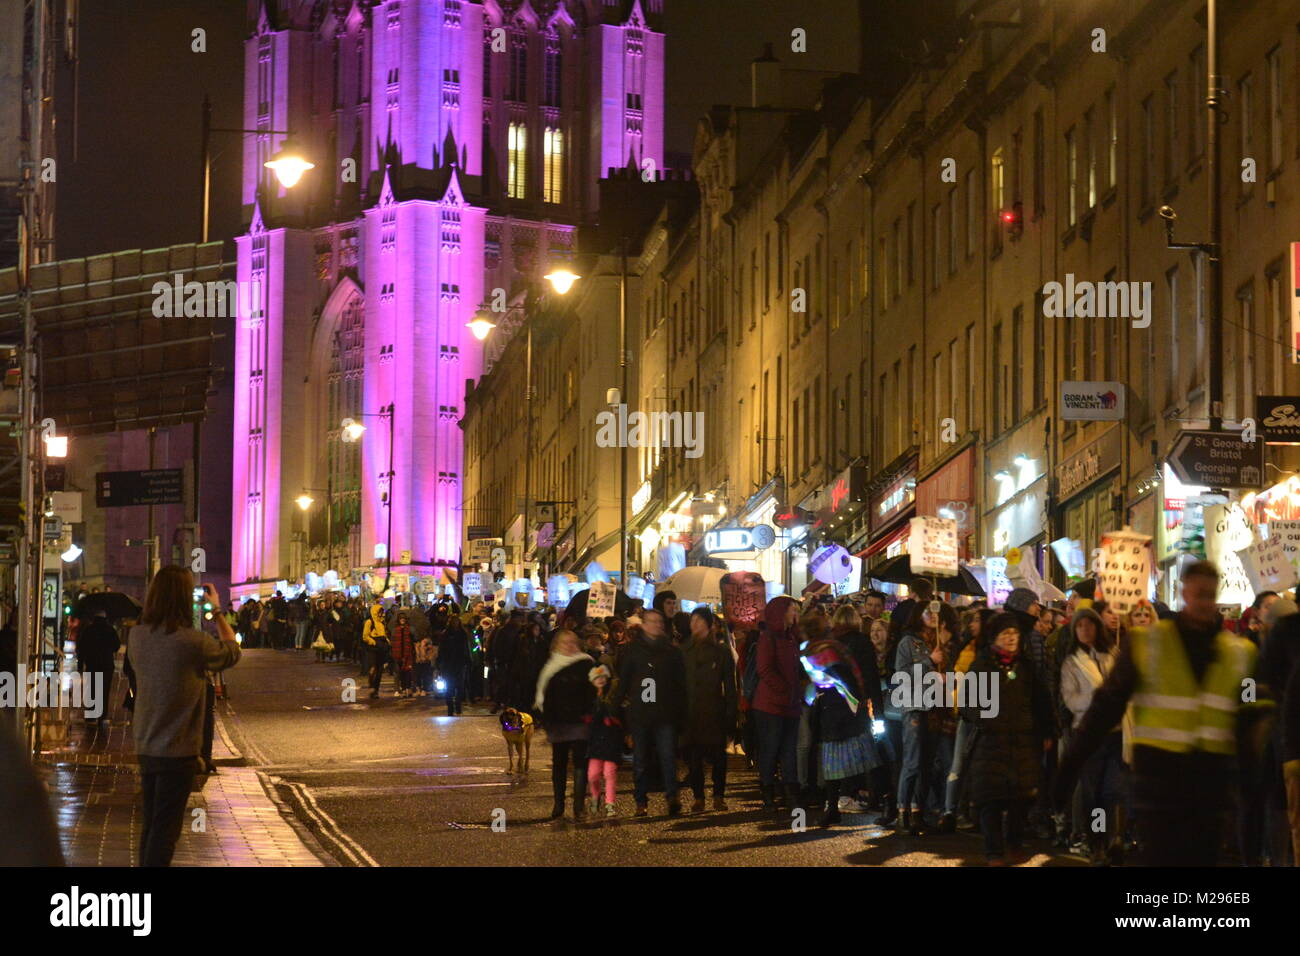 Bristol, UK. 6th Feb, 2018. 100 years ago today British women secured the right to vote. Suffragette Lantern Parade - Stock Image